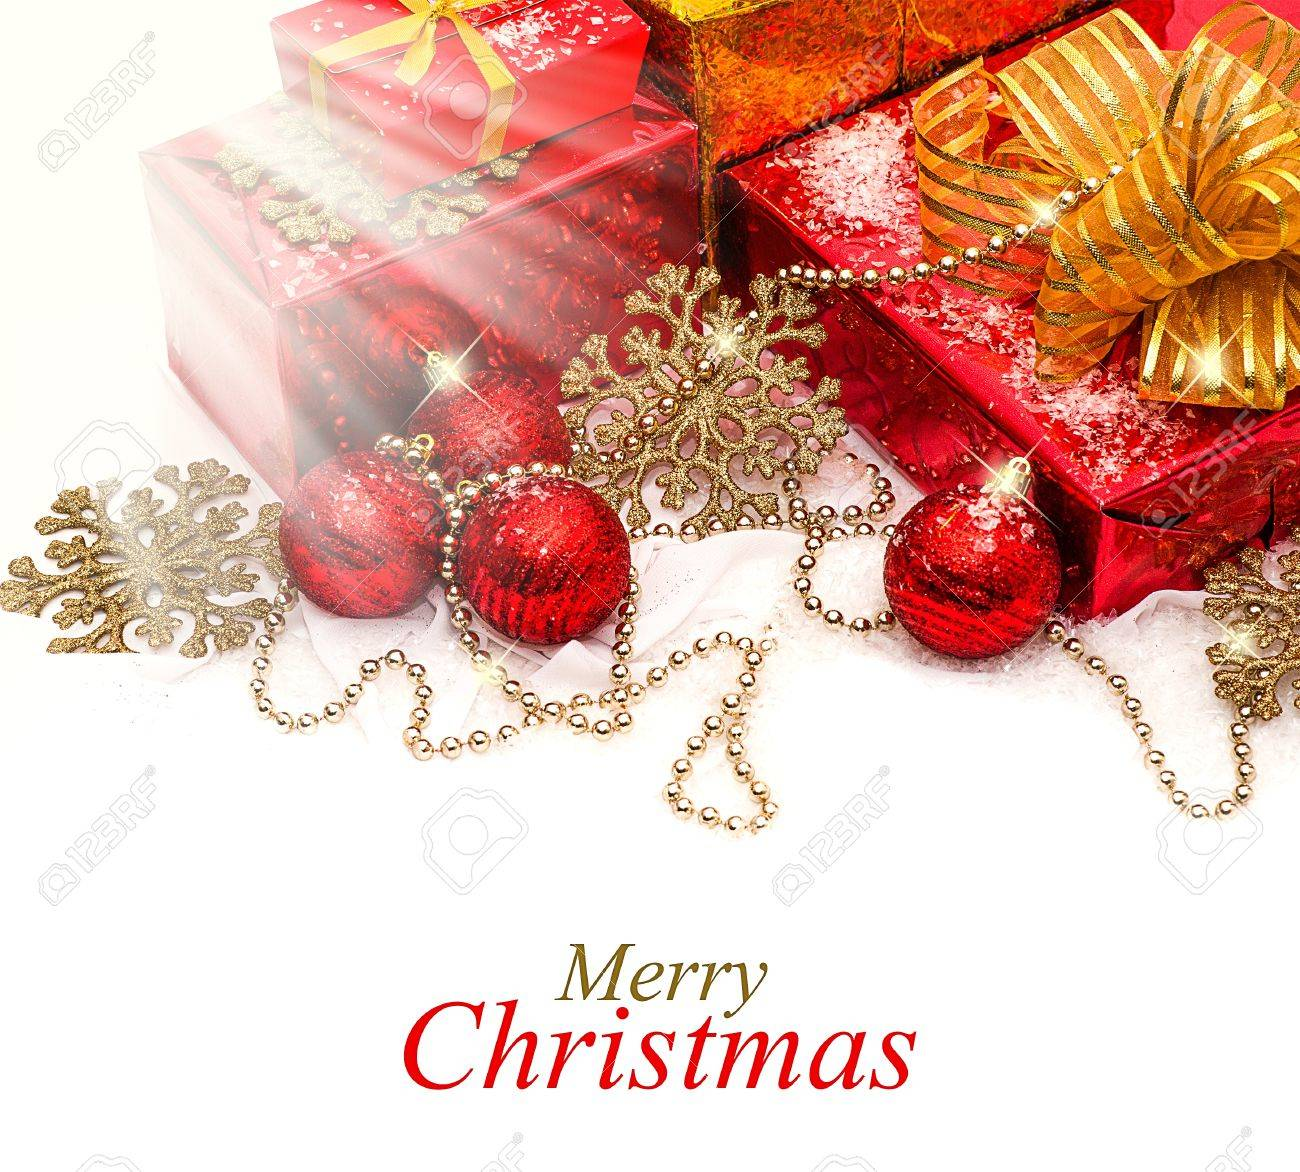 composition - Red and gold Christmas gifts and decorations on a white snow Stock Photo - 16279924